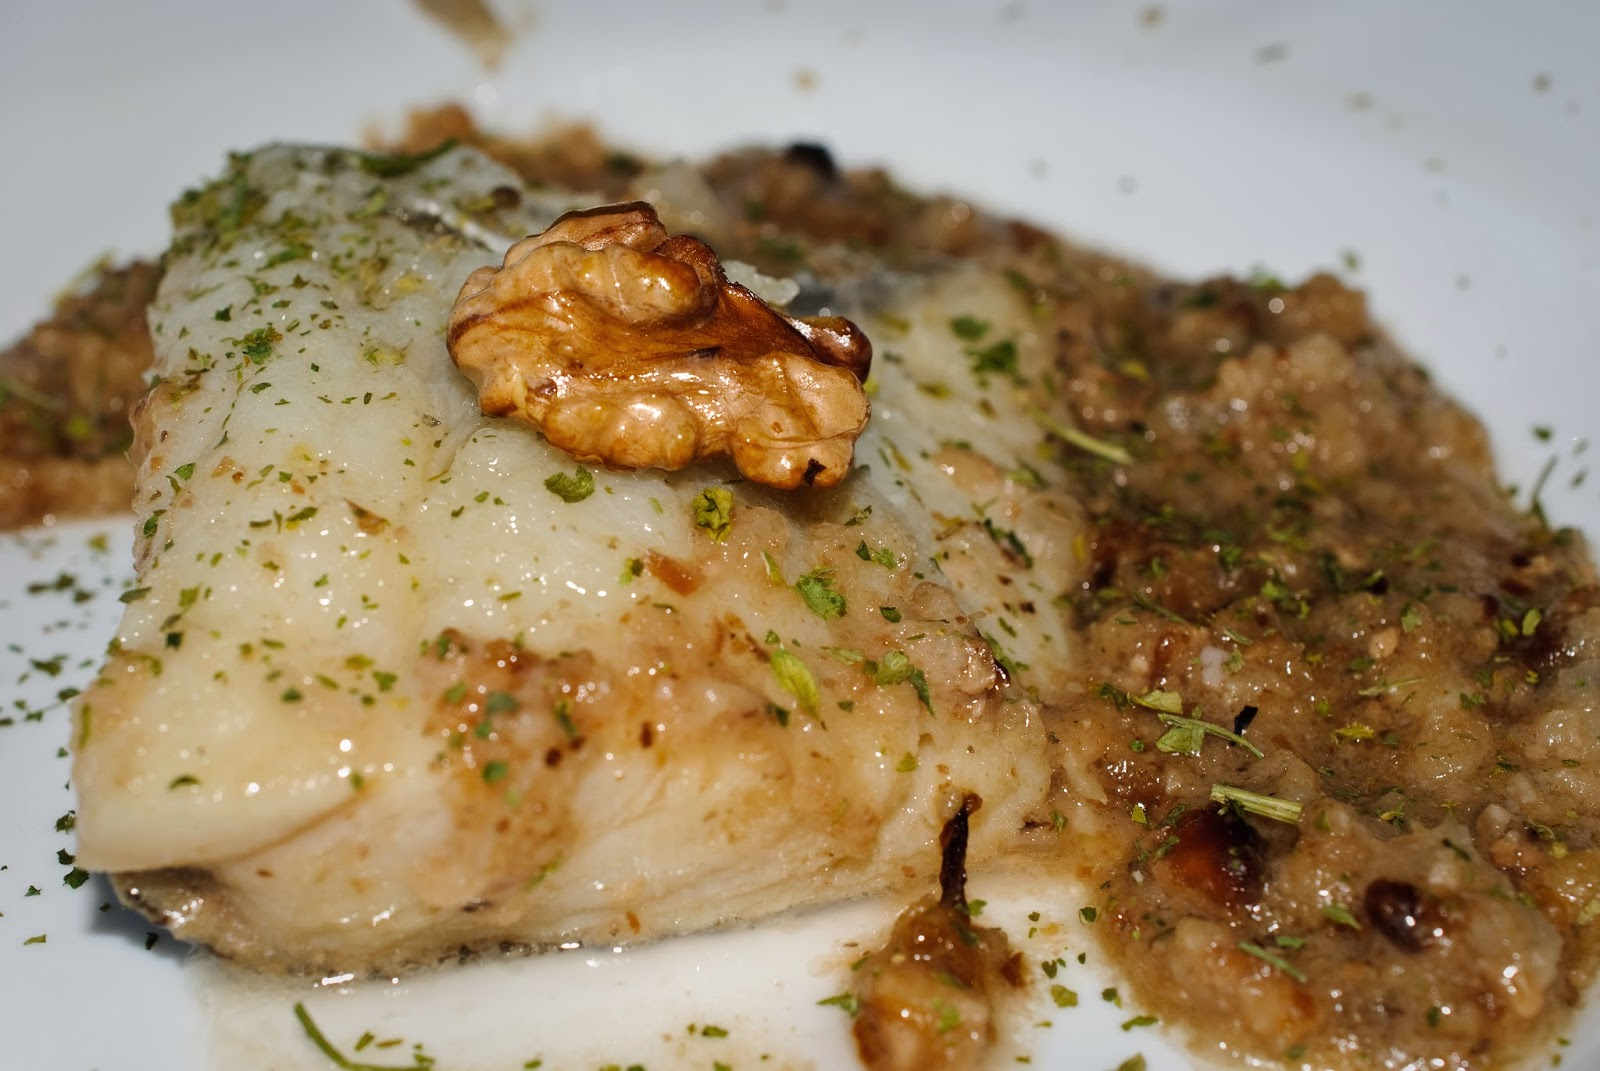 Bacalao con salsa de nueces; Cod with walnut sauce